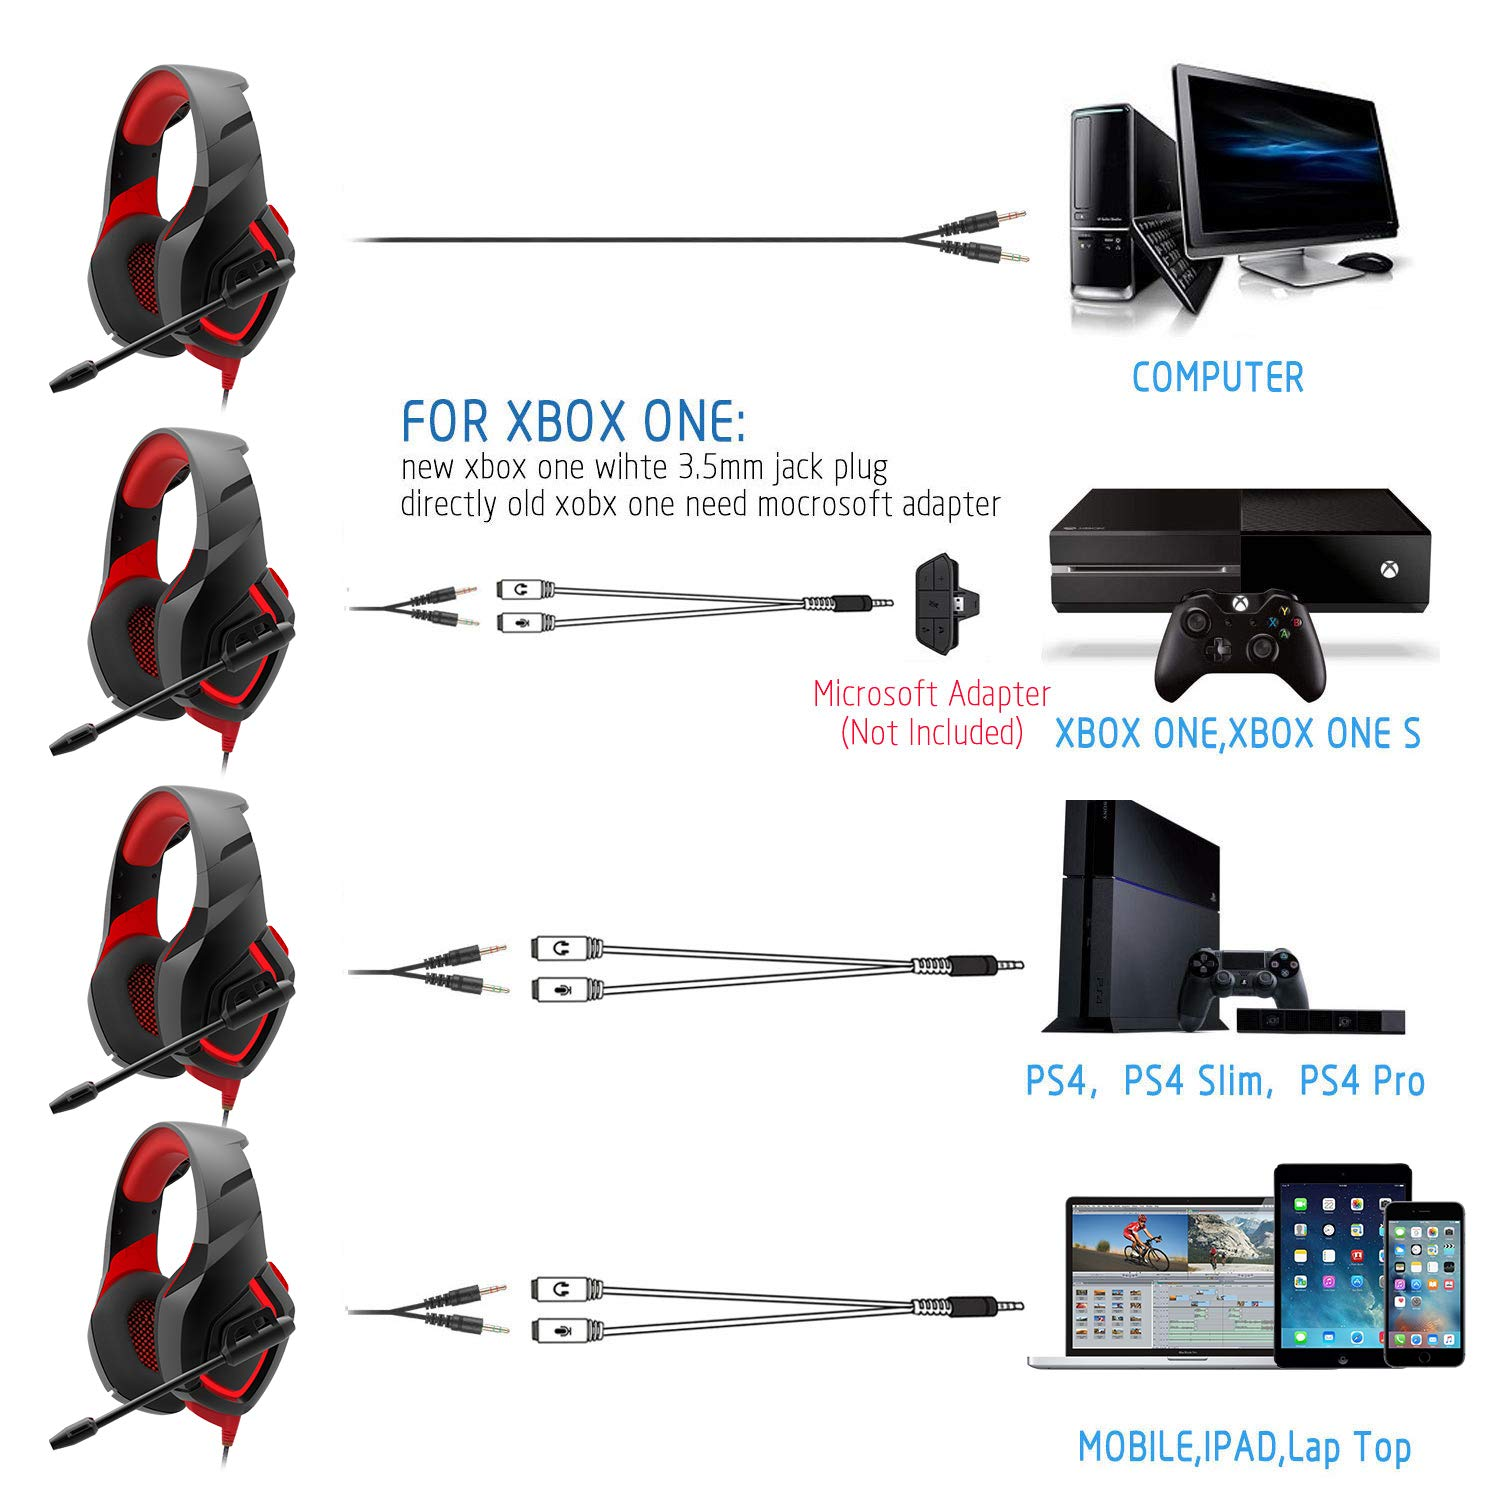 Amazon.com: Gaming Headset PS4 with Mic,Stereo Gaming Headset with Volume Control, LED Light Soft Memory Earmuffs Bass Surround Noise Cancelling Over Ear ...